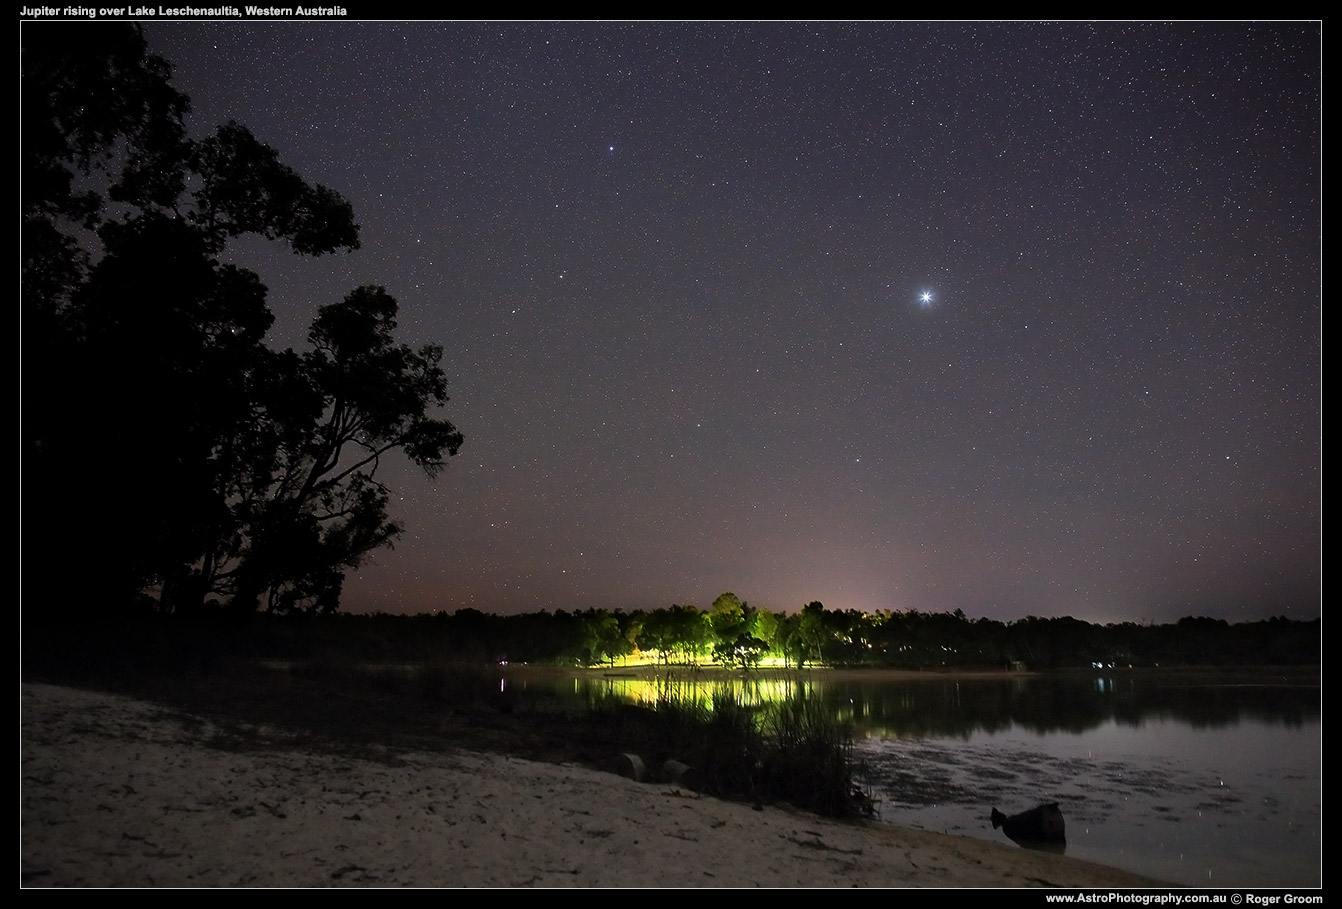 Jupiter rising above the camp and lake at Lake Leschenaultia in Chidlow, Western Australia. February 2016.